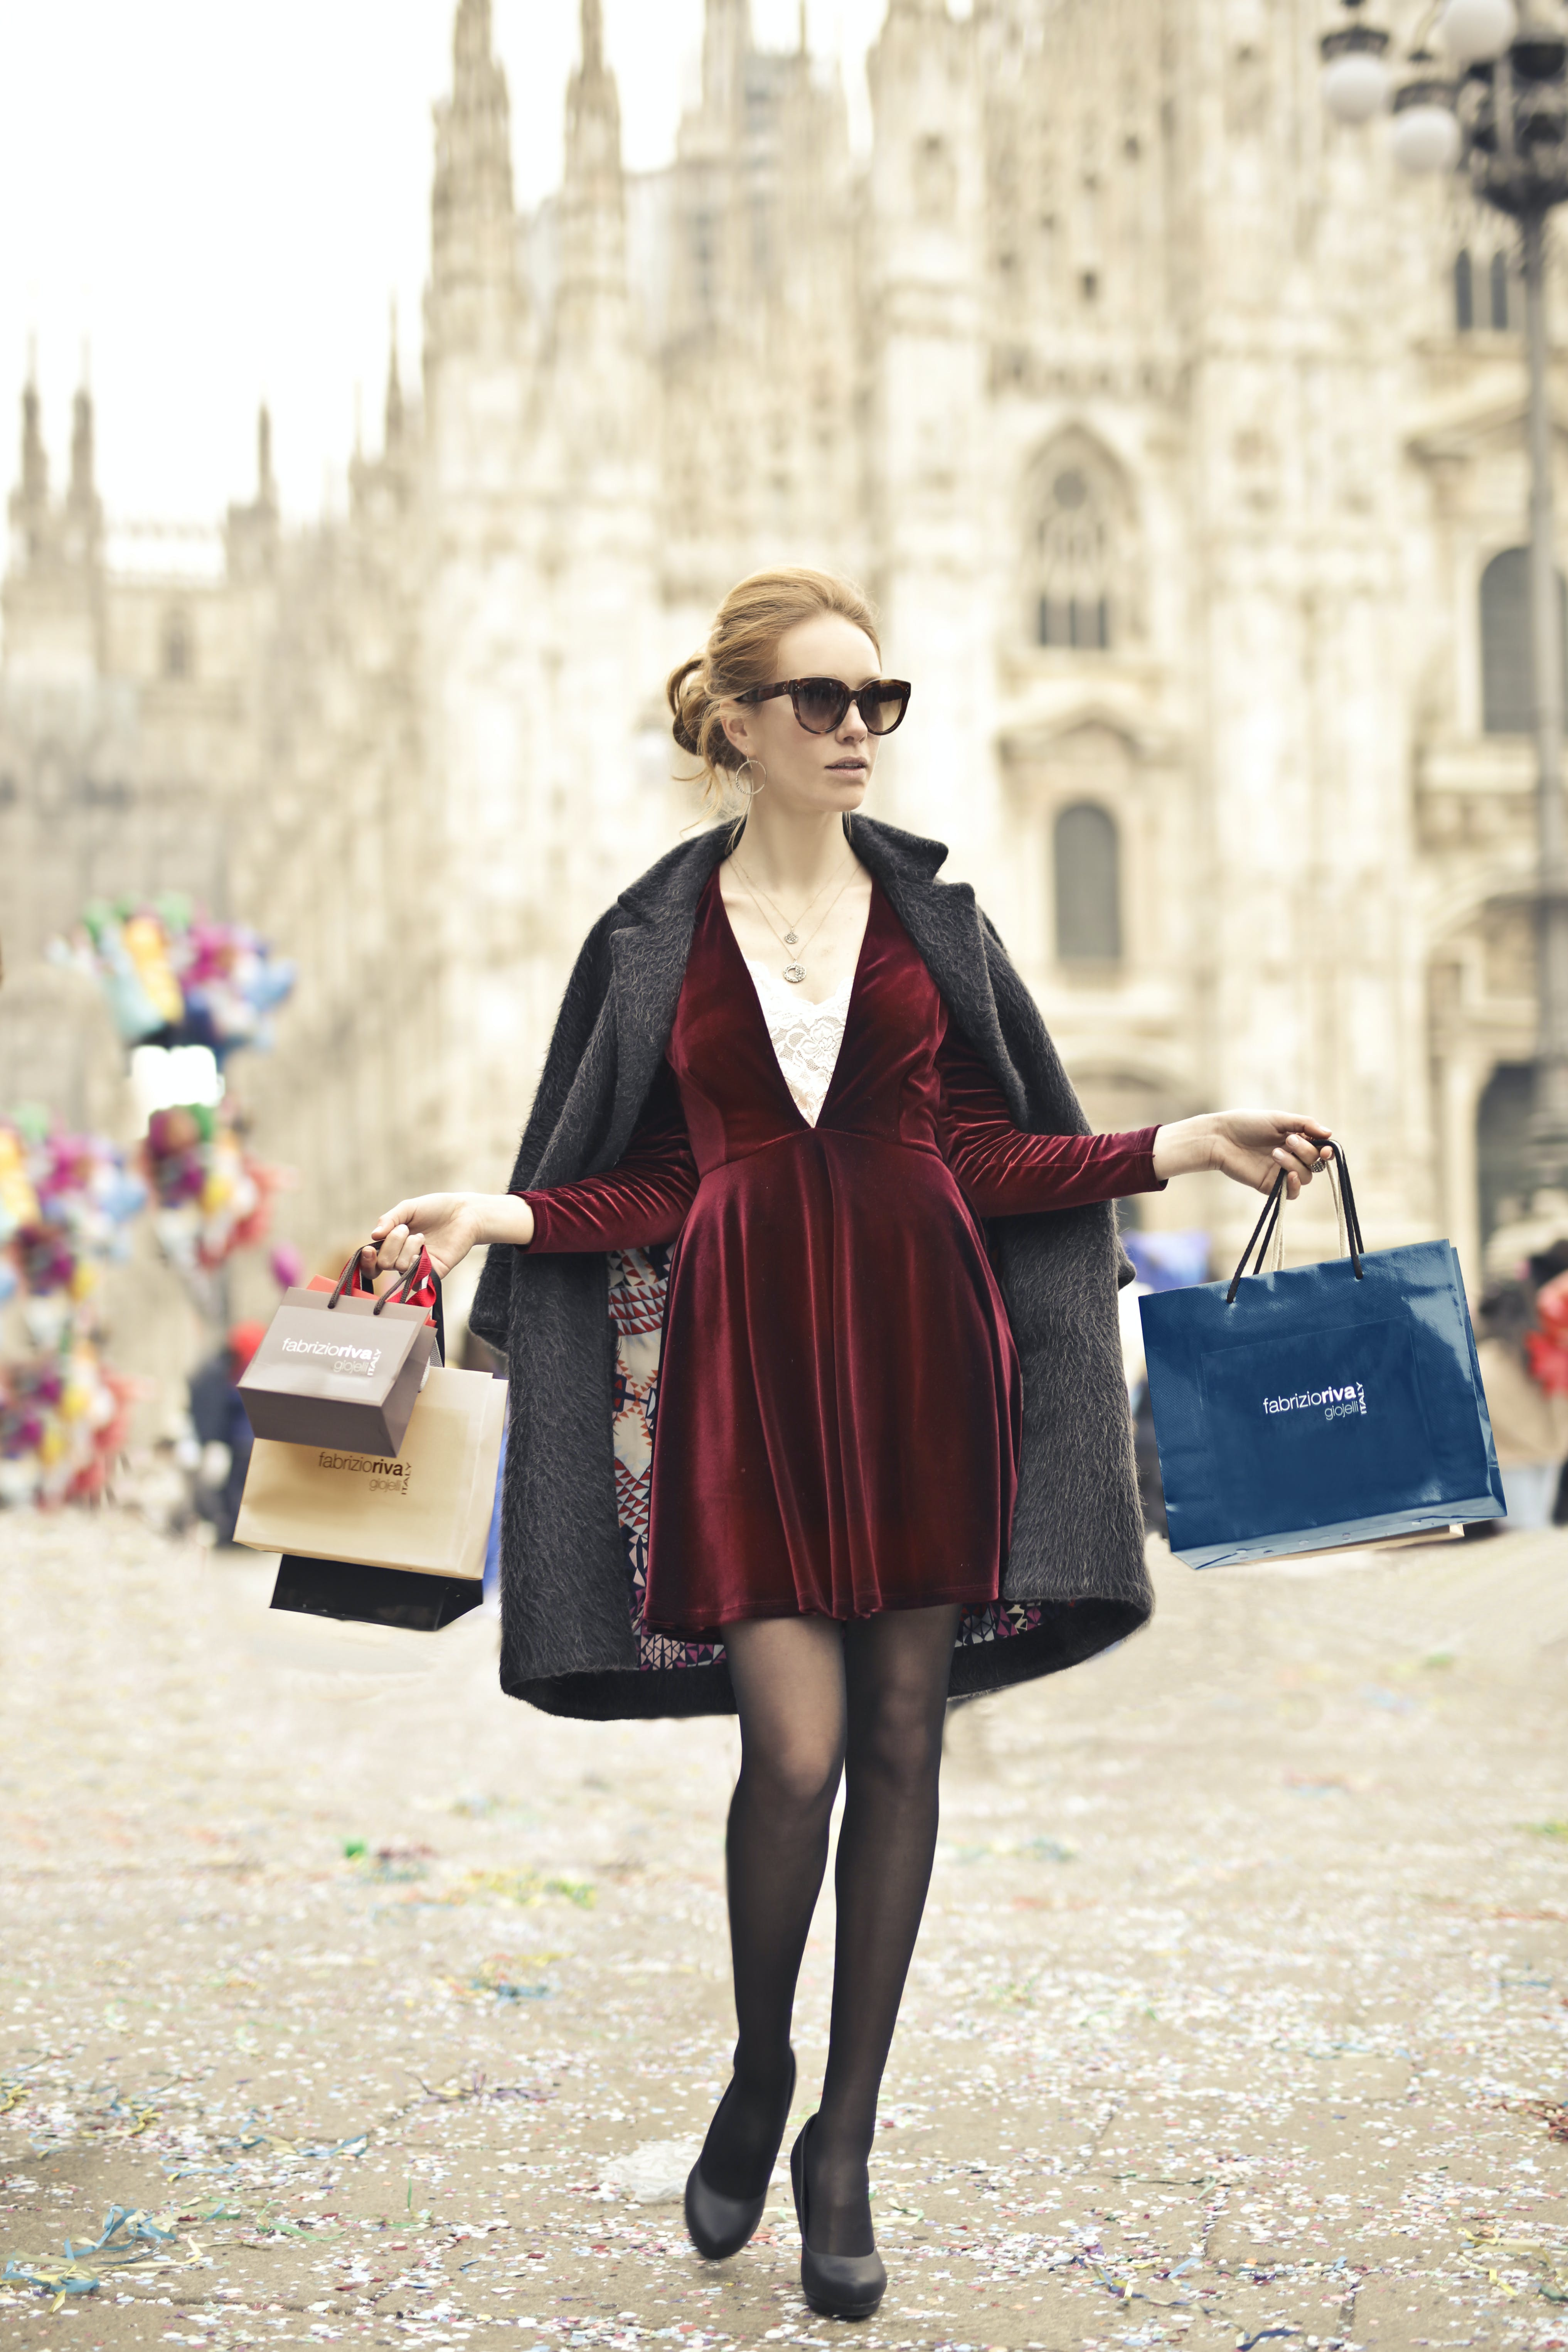 Photo of a Woman Holding Shopping Bags